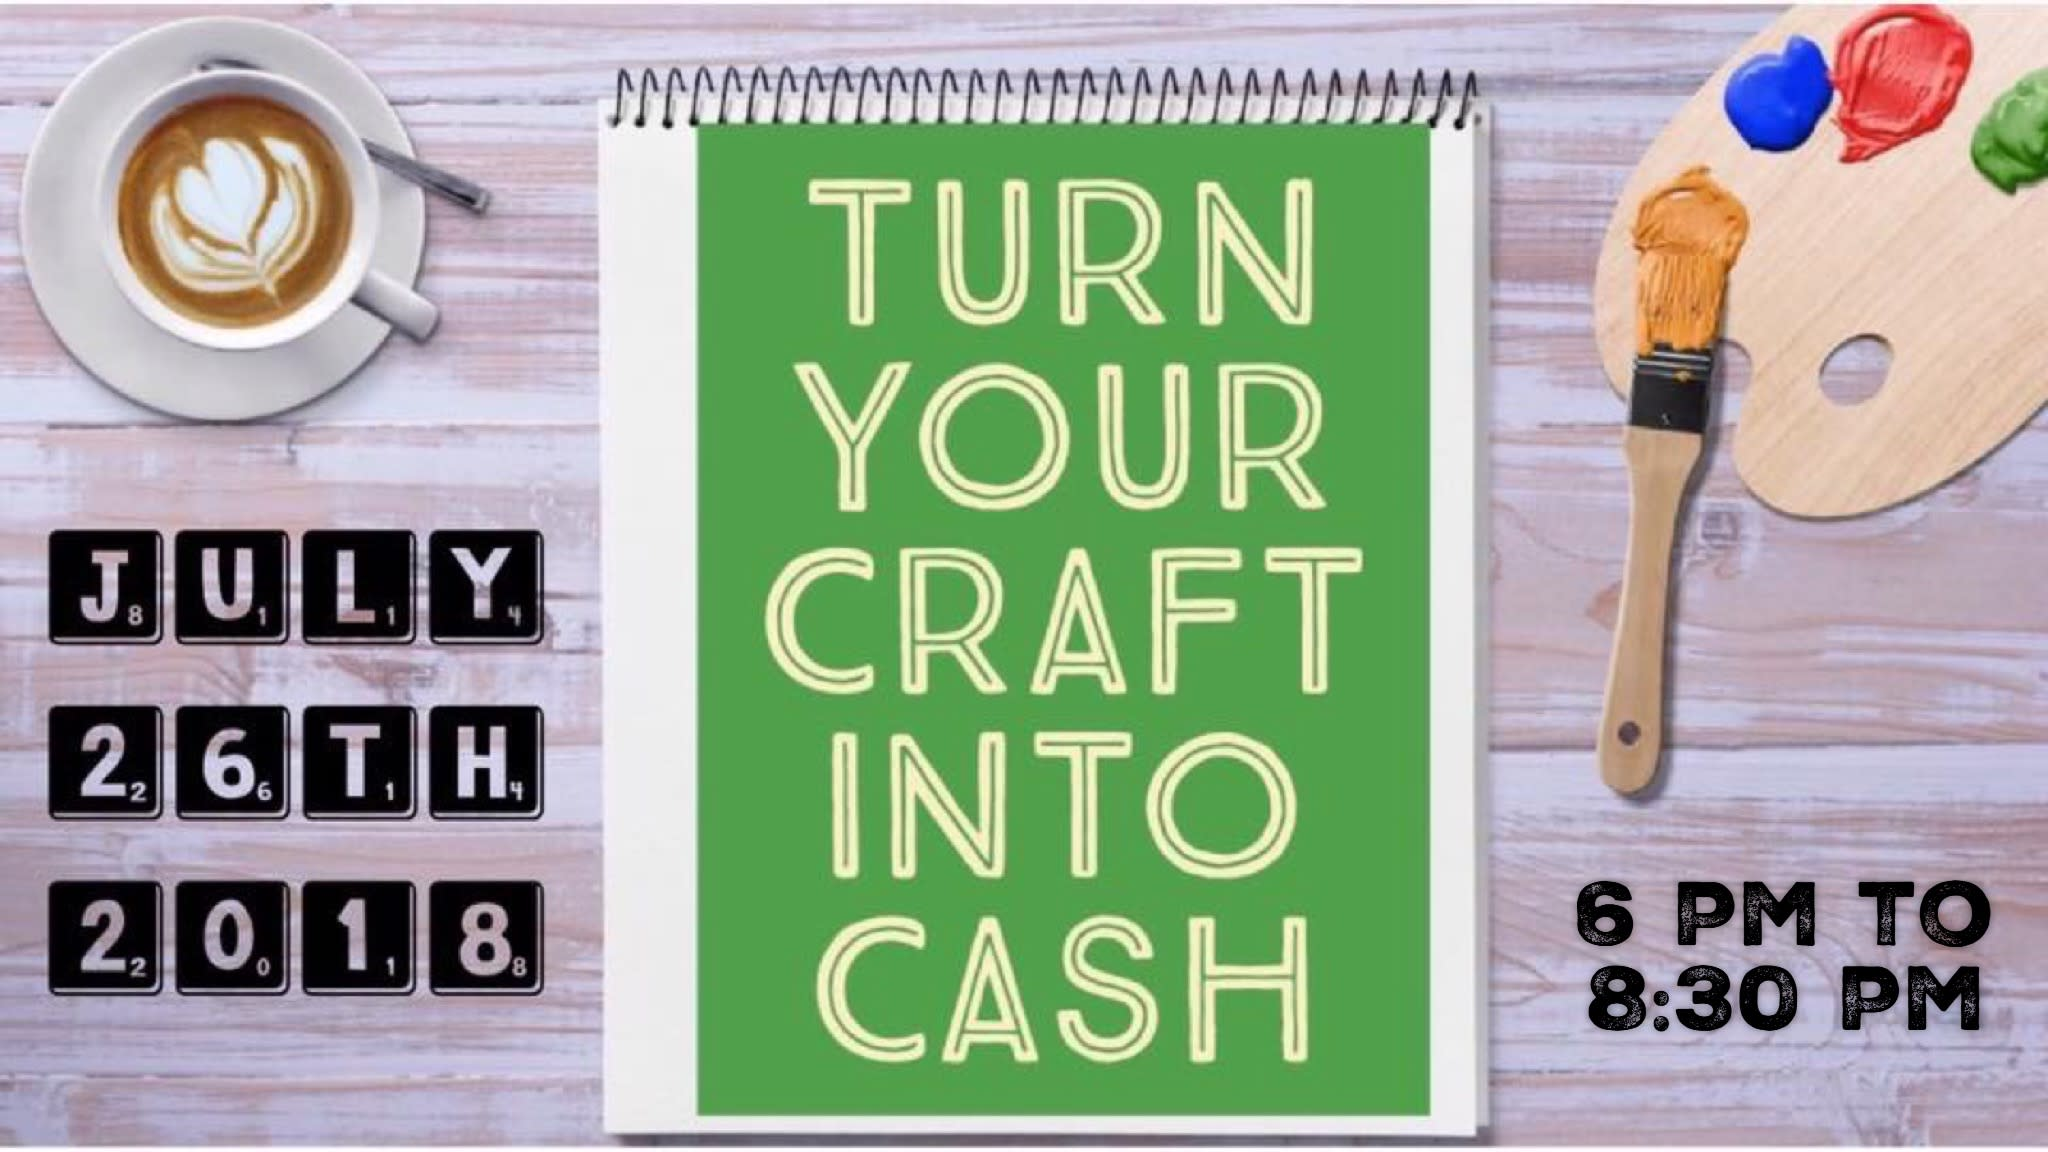 Turn Your Craft Into Cash